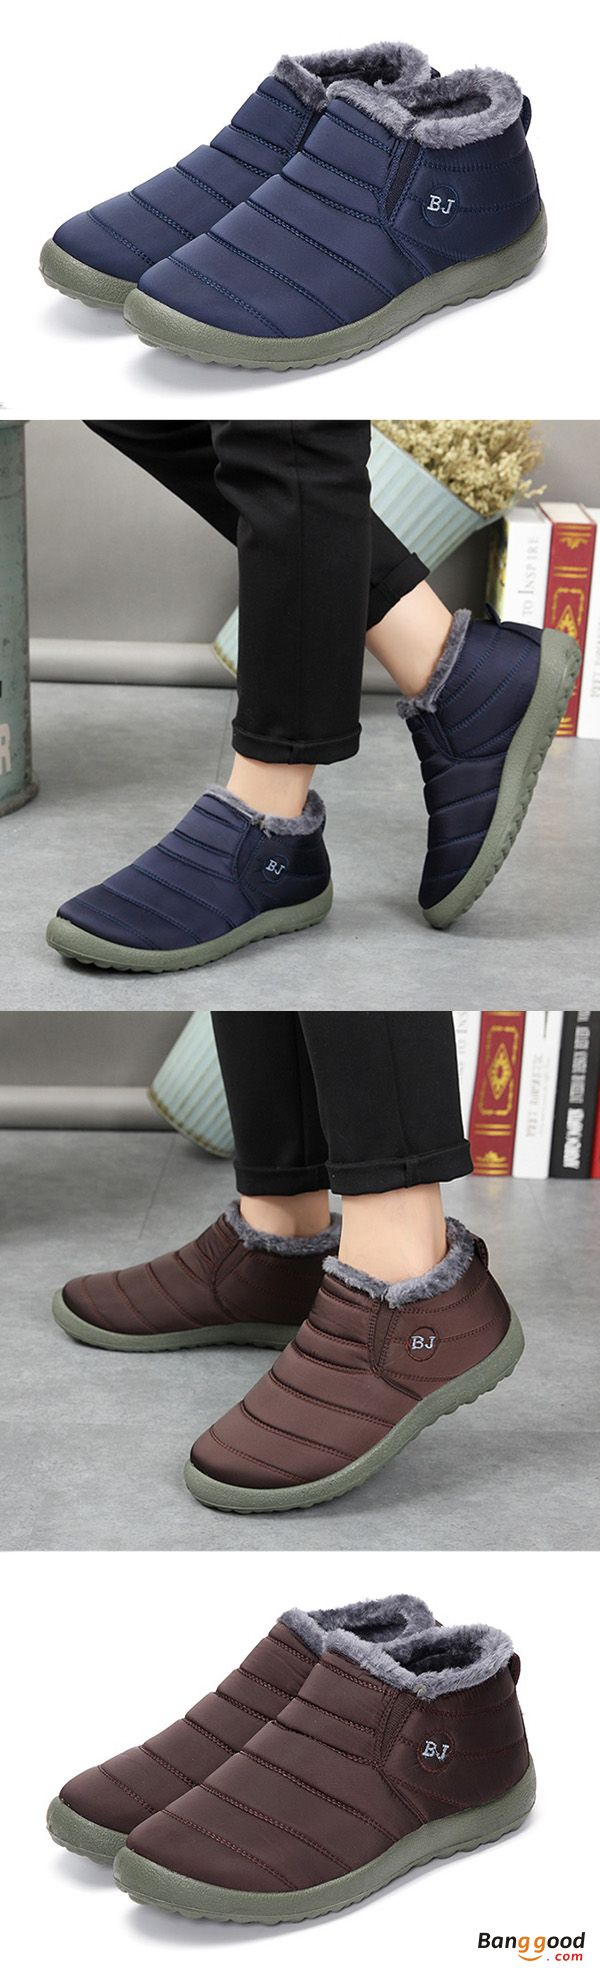 Men Winter Cotton Shoes Fur Lining Keep Warm Casual Outdoor Snow Boots. Mens fashion, mens shoes, mens boots, mens winter outfits. Casual, Slip-On, Fur Lining, suitable for indoor and outdoor activities on multi occasions. Get the look!